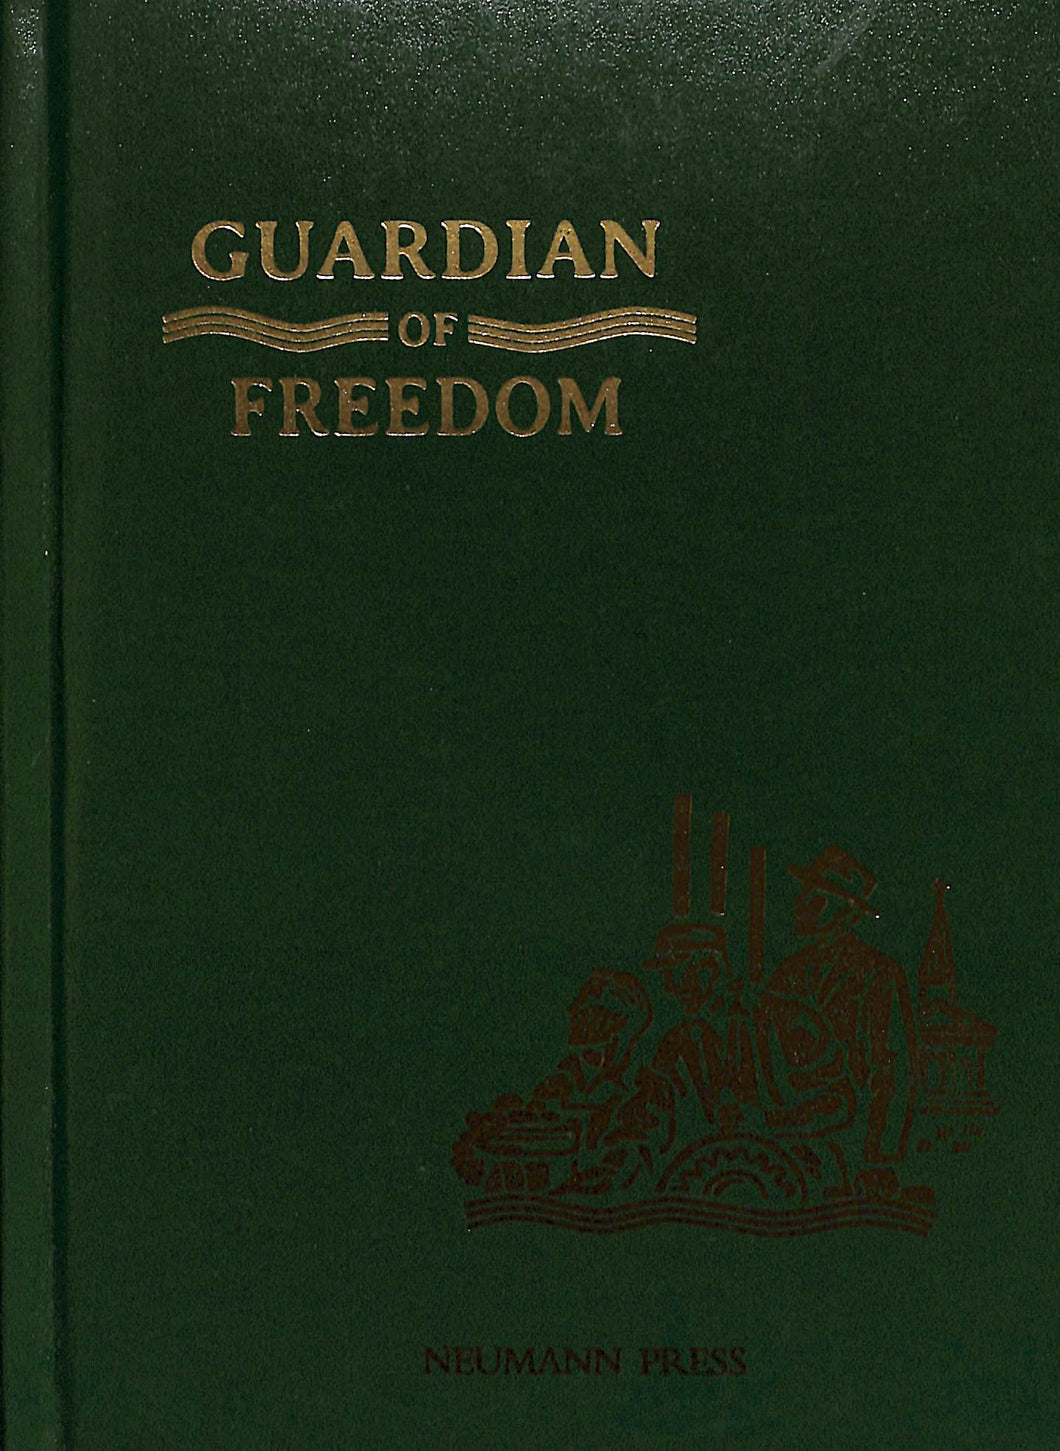 Guardian Of Freedom Textbook